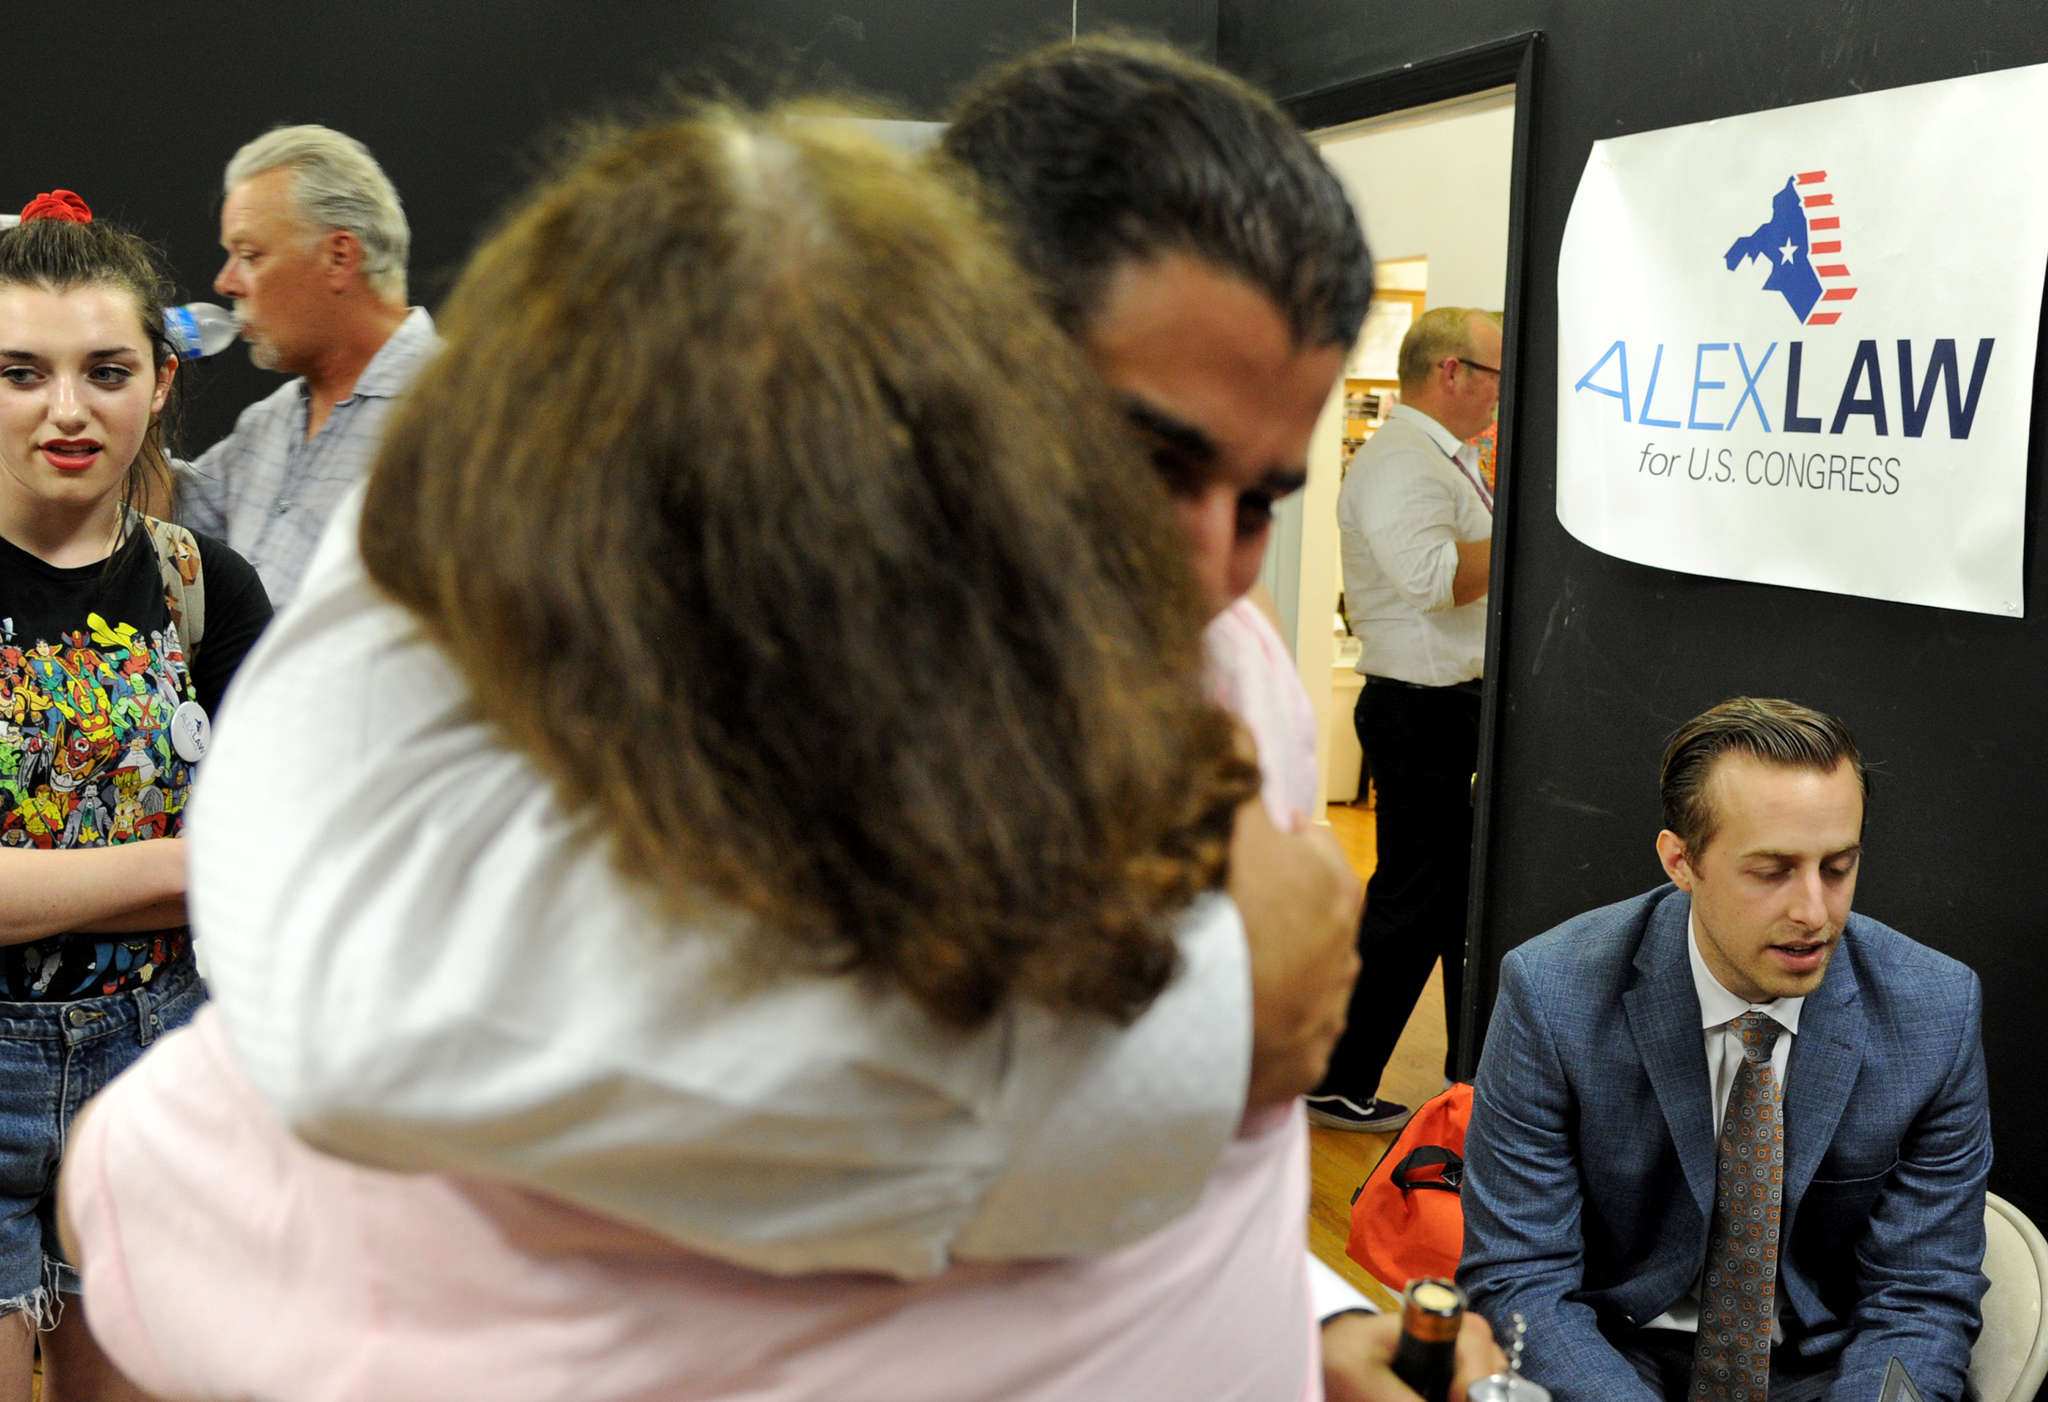 Alex Law (right) talks to a reporter in his Haddon Township campaign headquarters, surrounded by supporters, after his loss to Donald Norcross in a Democratic congressional primary.